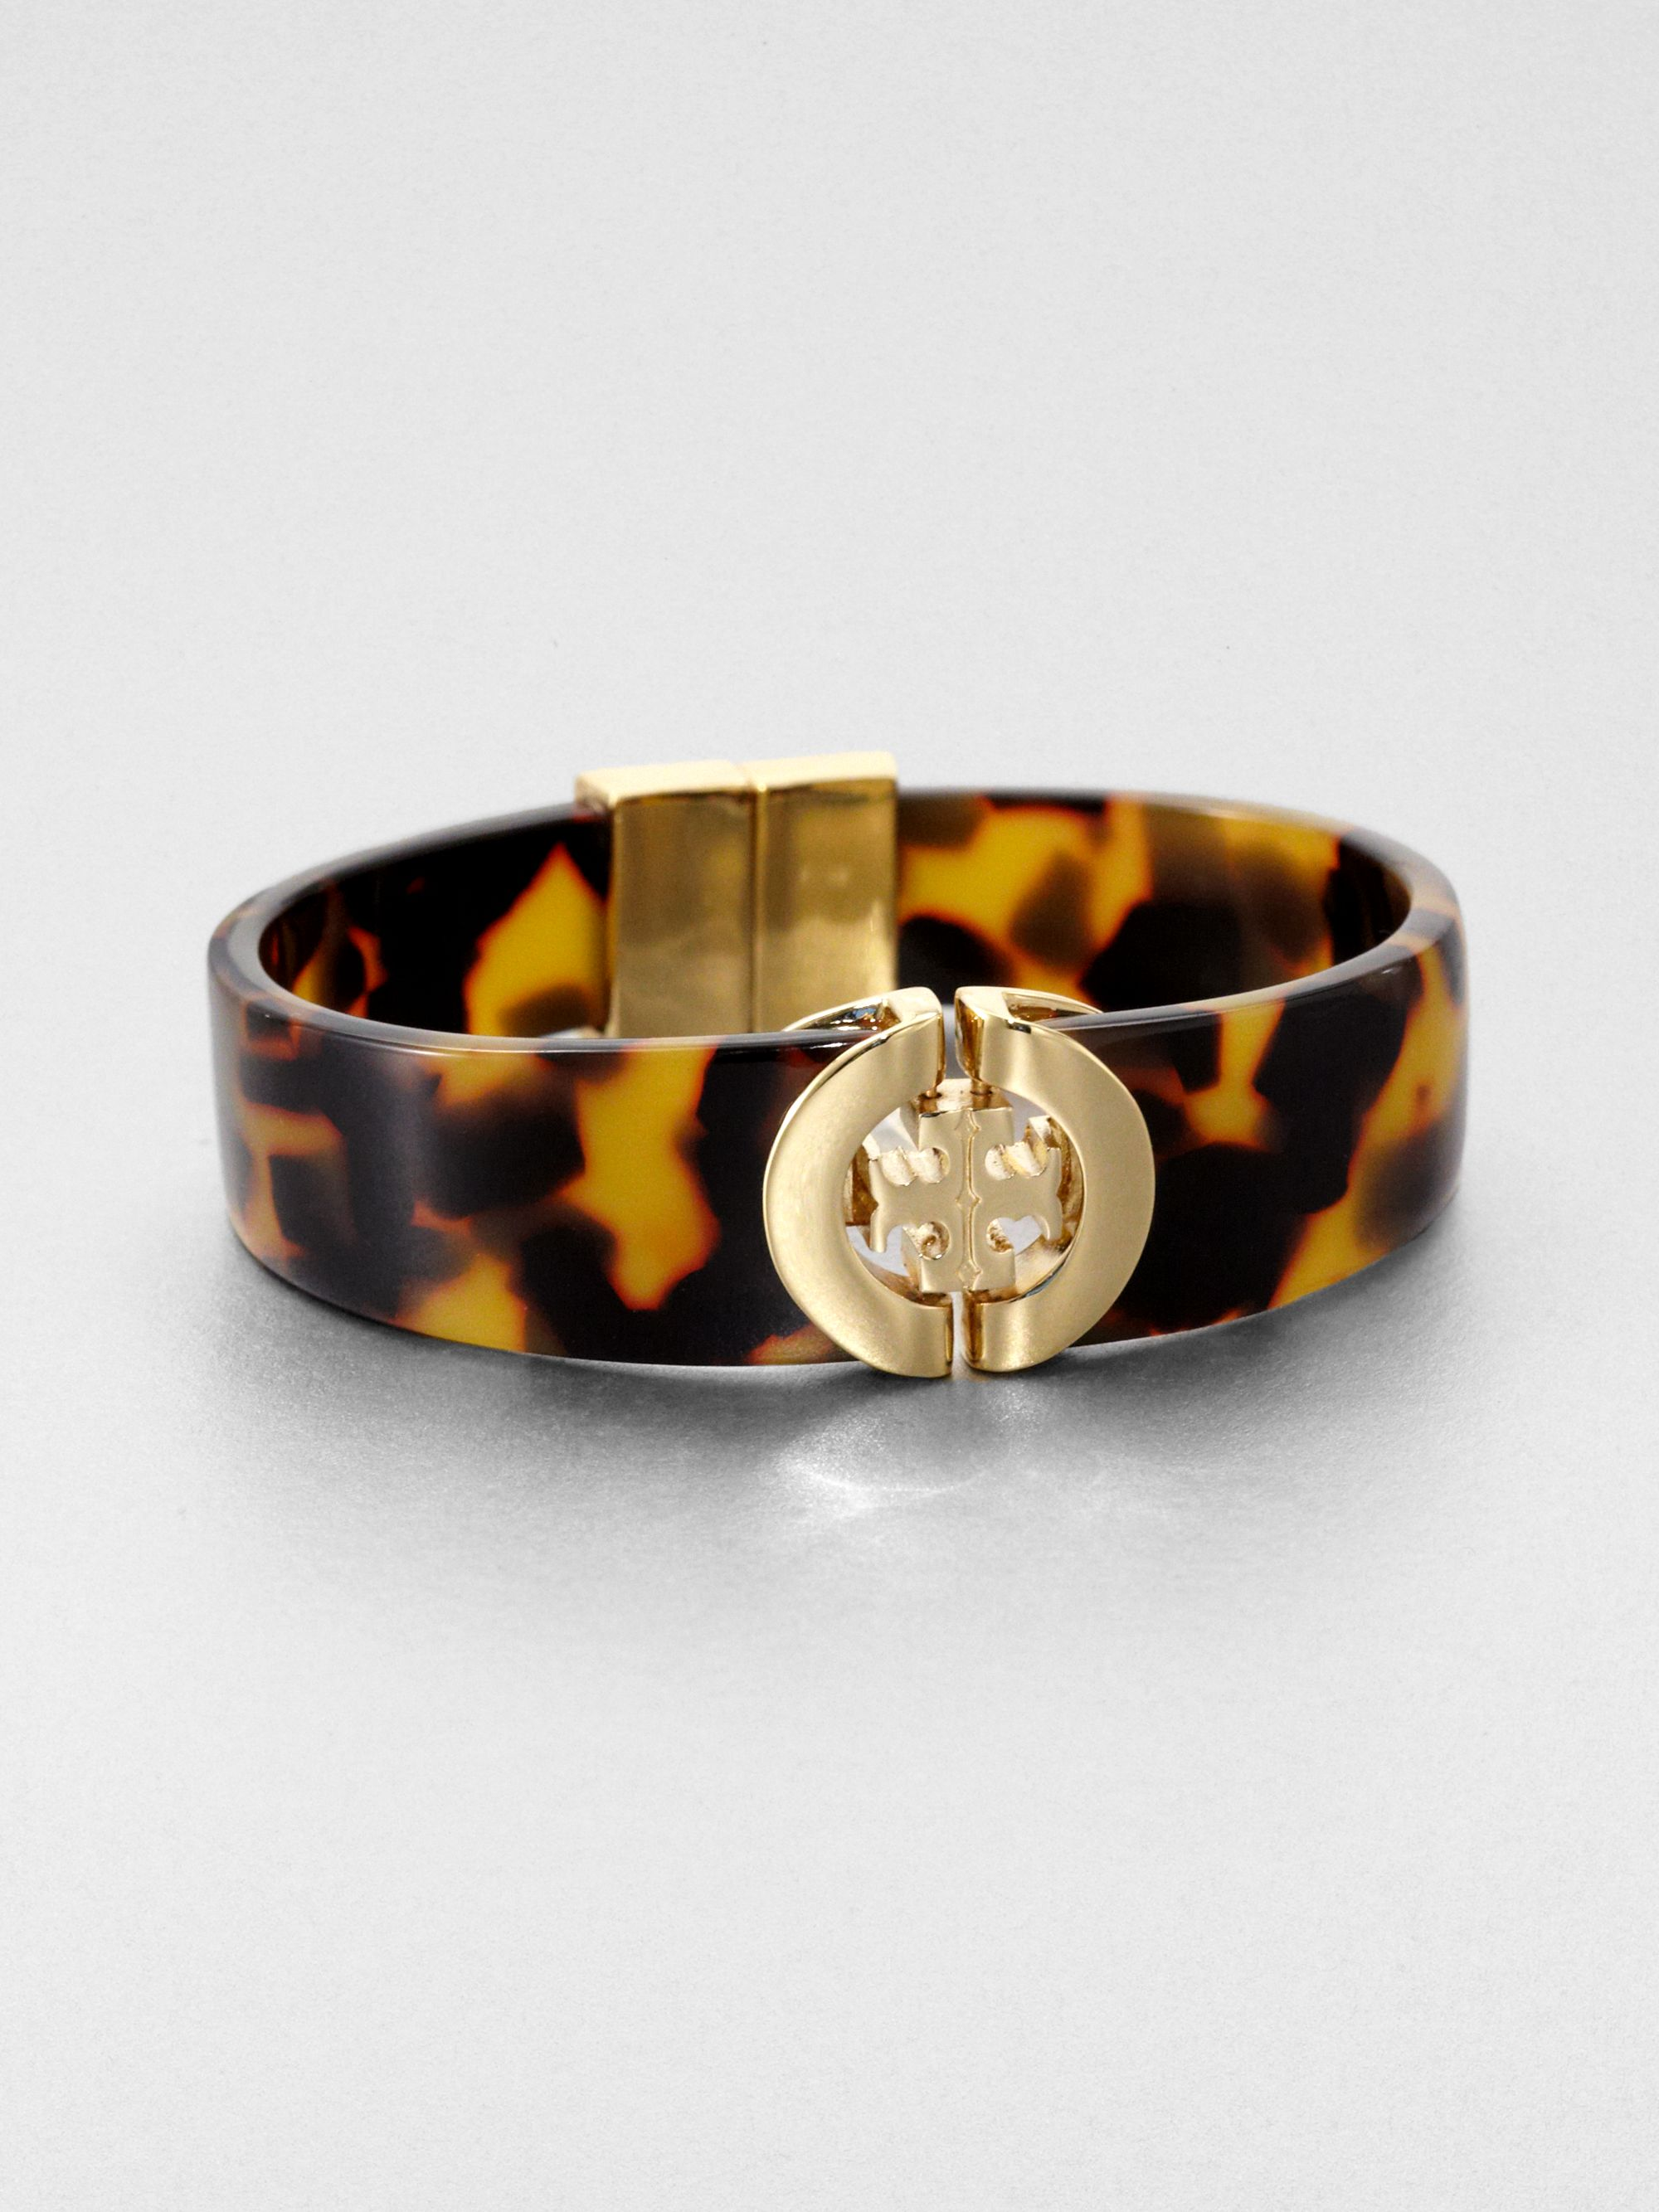 Tory Burch Tortoise Print Bangle Bracelet In Brown  Lyst. Inlaid Earrings. 5 Carat Engagement Rings. Diamond Eternity Bangle Bracelet. Wrist Wrap Bracelet. Vertical Necklace. Jewellery Bands. Grooms Rings. Design Anklet